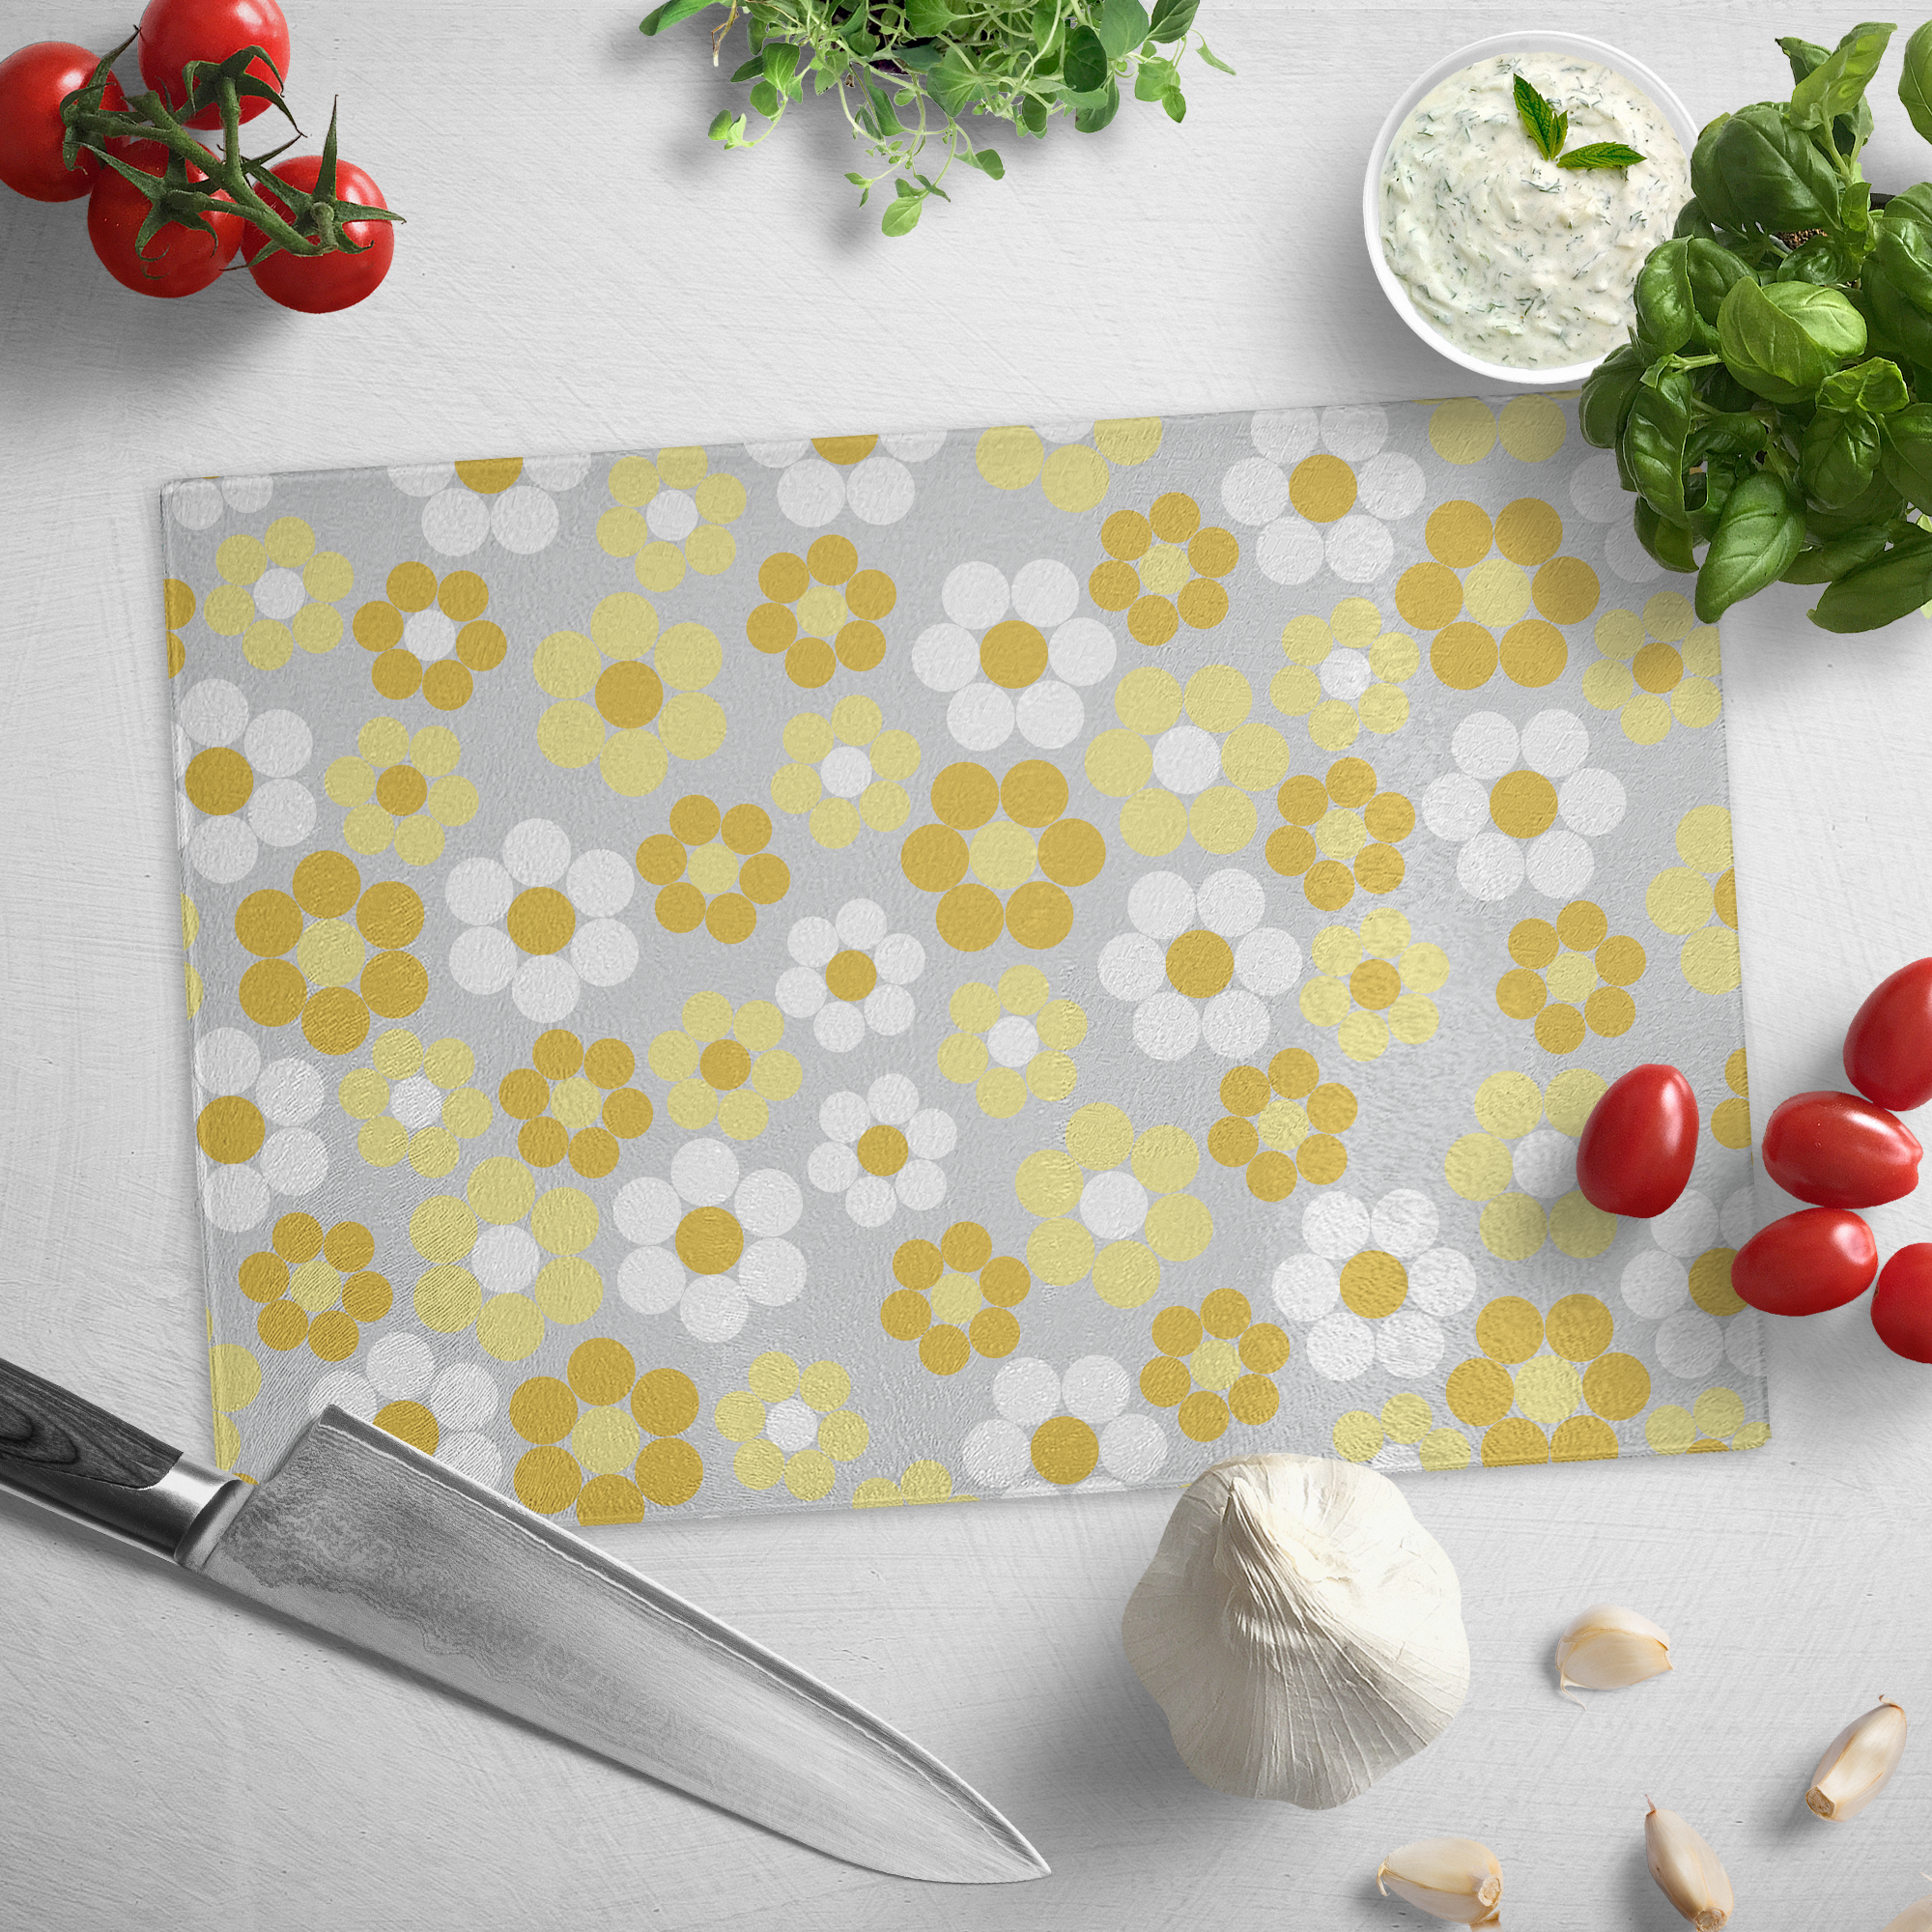 Midsummer | Glass cutting board